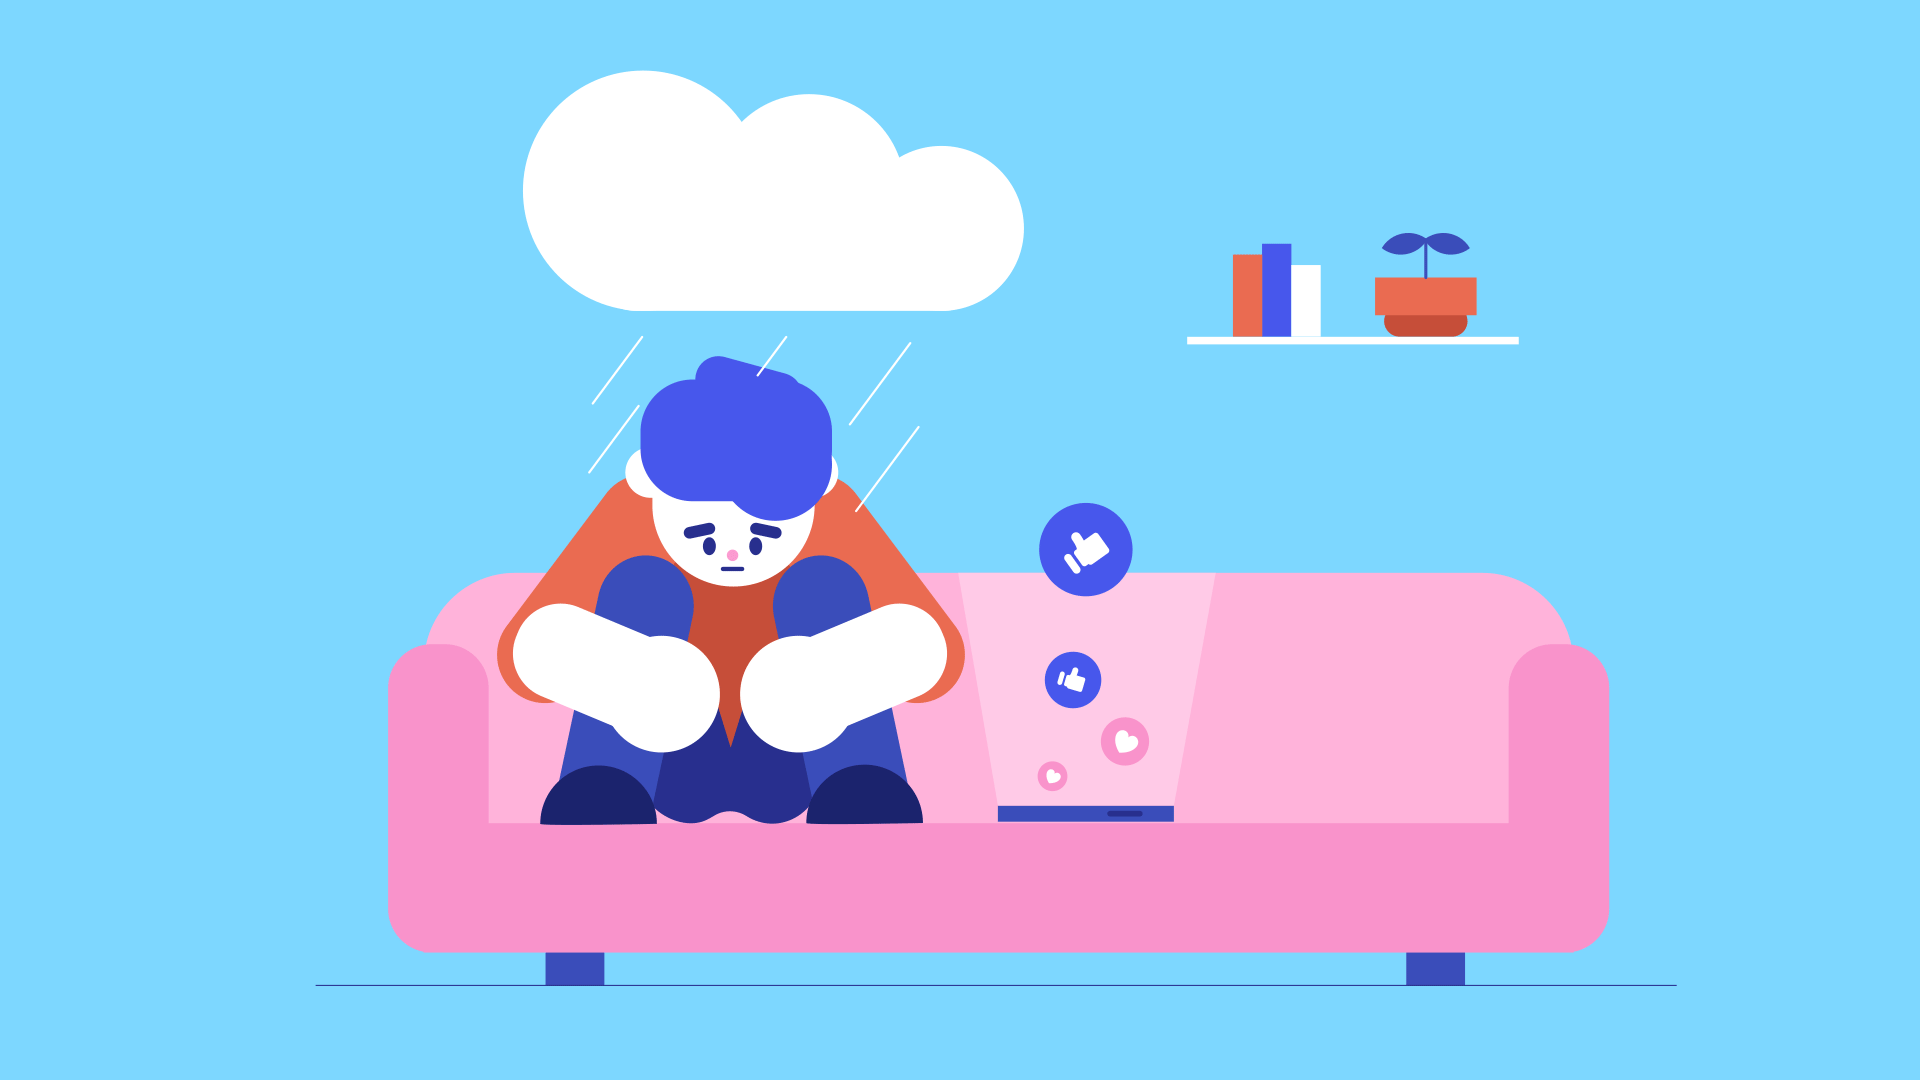 A sad person sits on a couch next to a smartphone, with a small rain cloud above them.